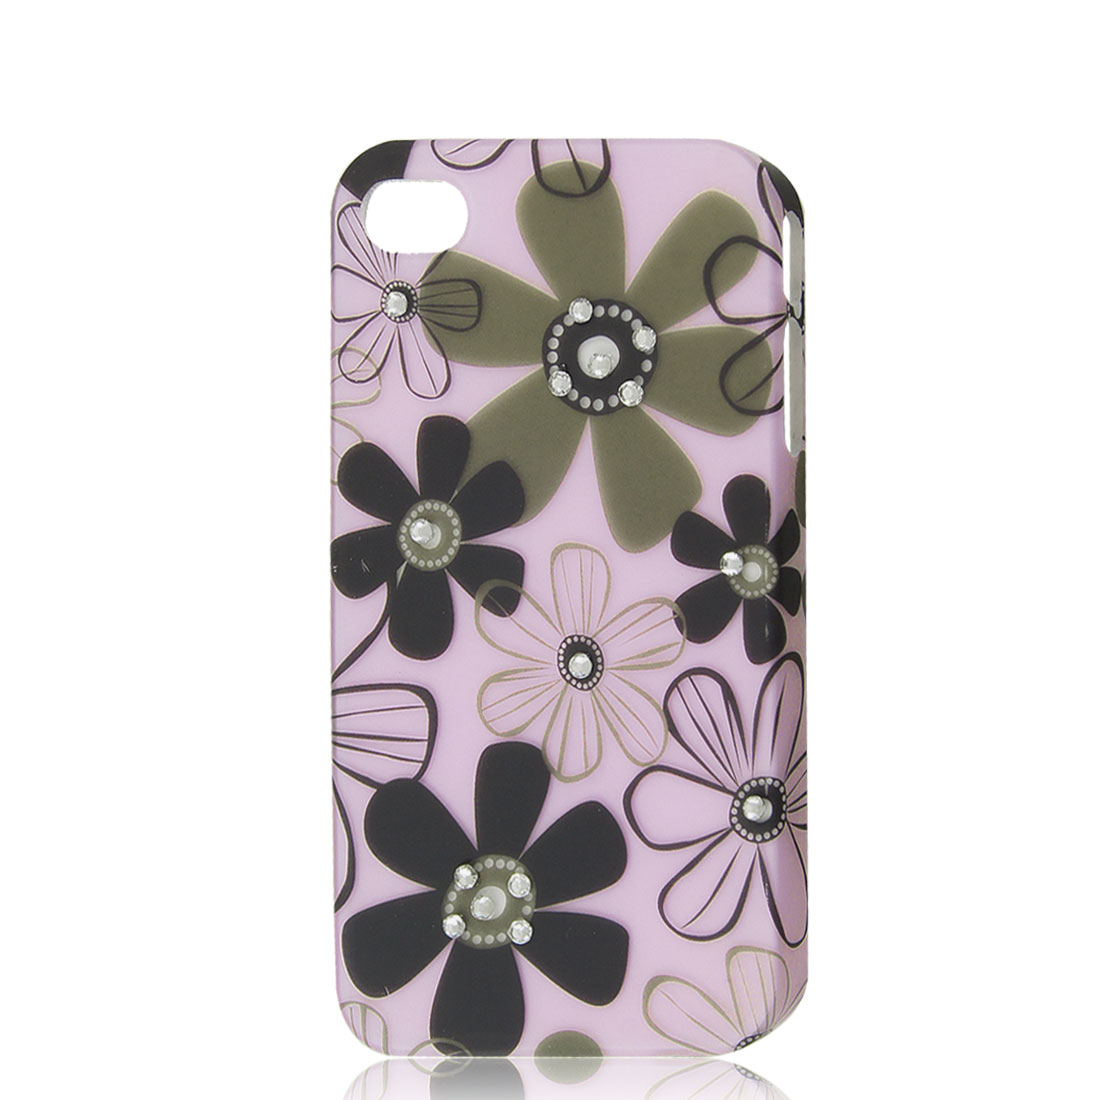 Light Pink Rhinestone Flower Protective Hard Back Case Cover Skin for iPhone 4 4G